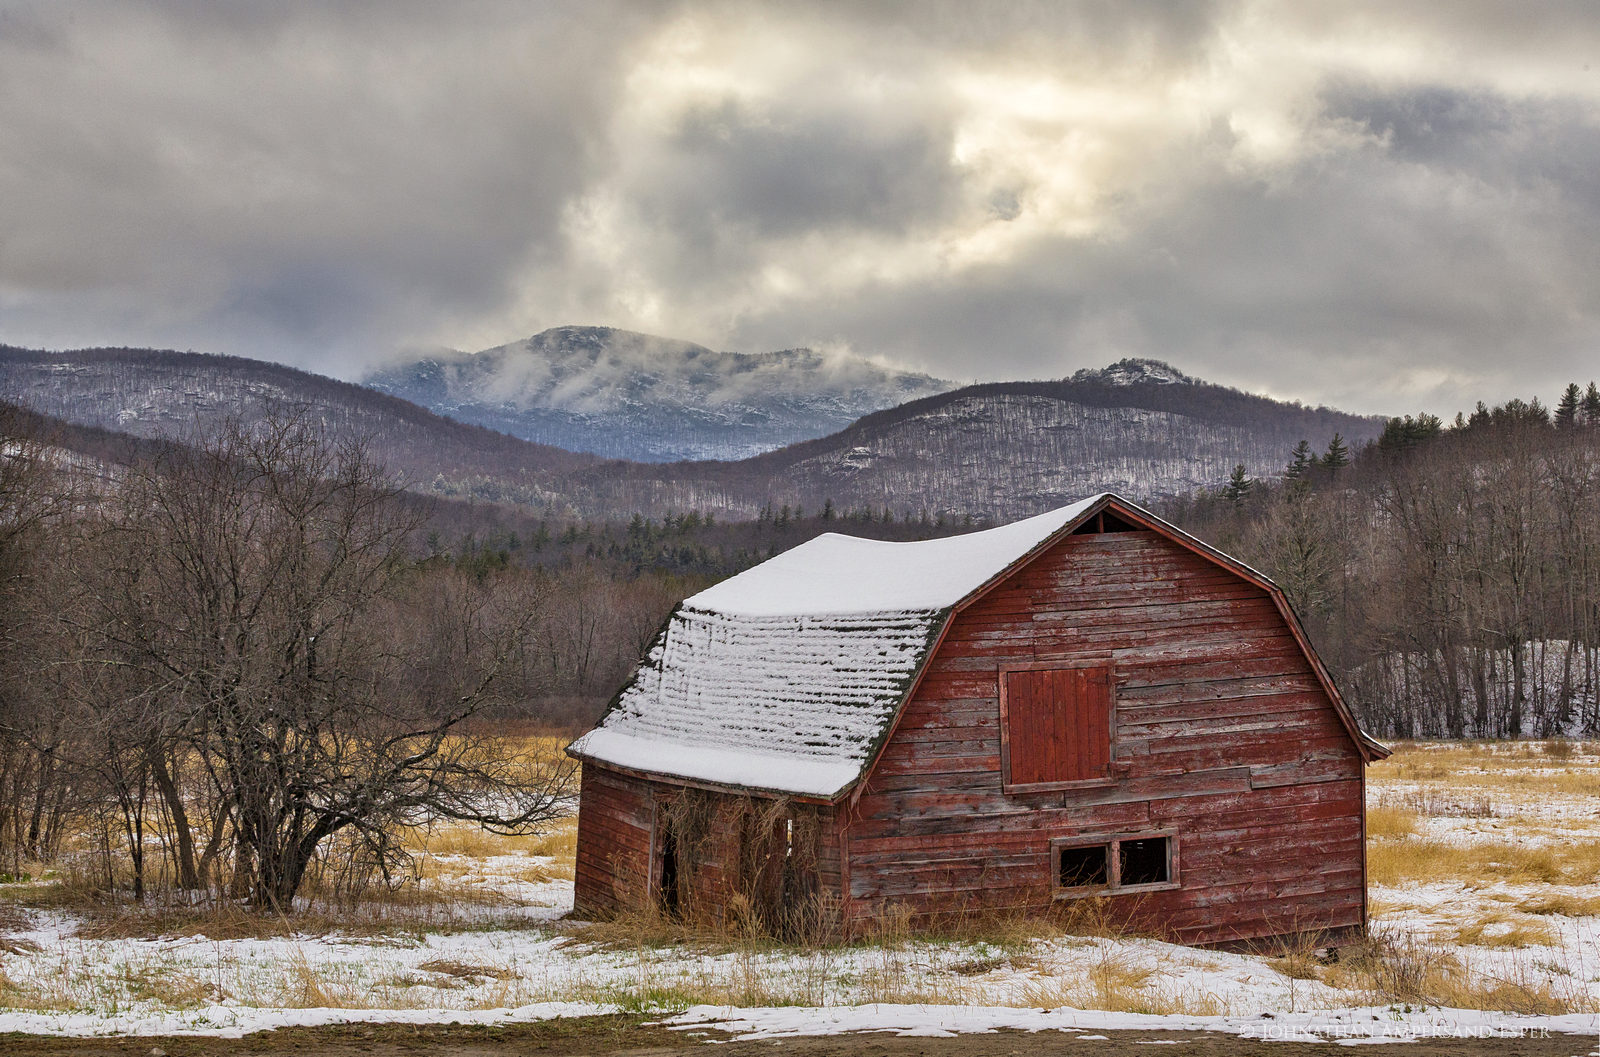 Keene Valley barn,barn,old barn,old,red,Keene Valley,April,snowfall,snow,dusting,Pitchoff Mt,Owls Head Mt,, photo